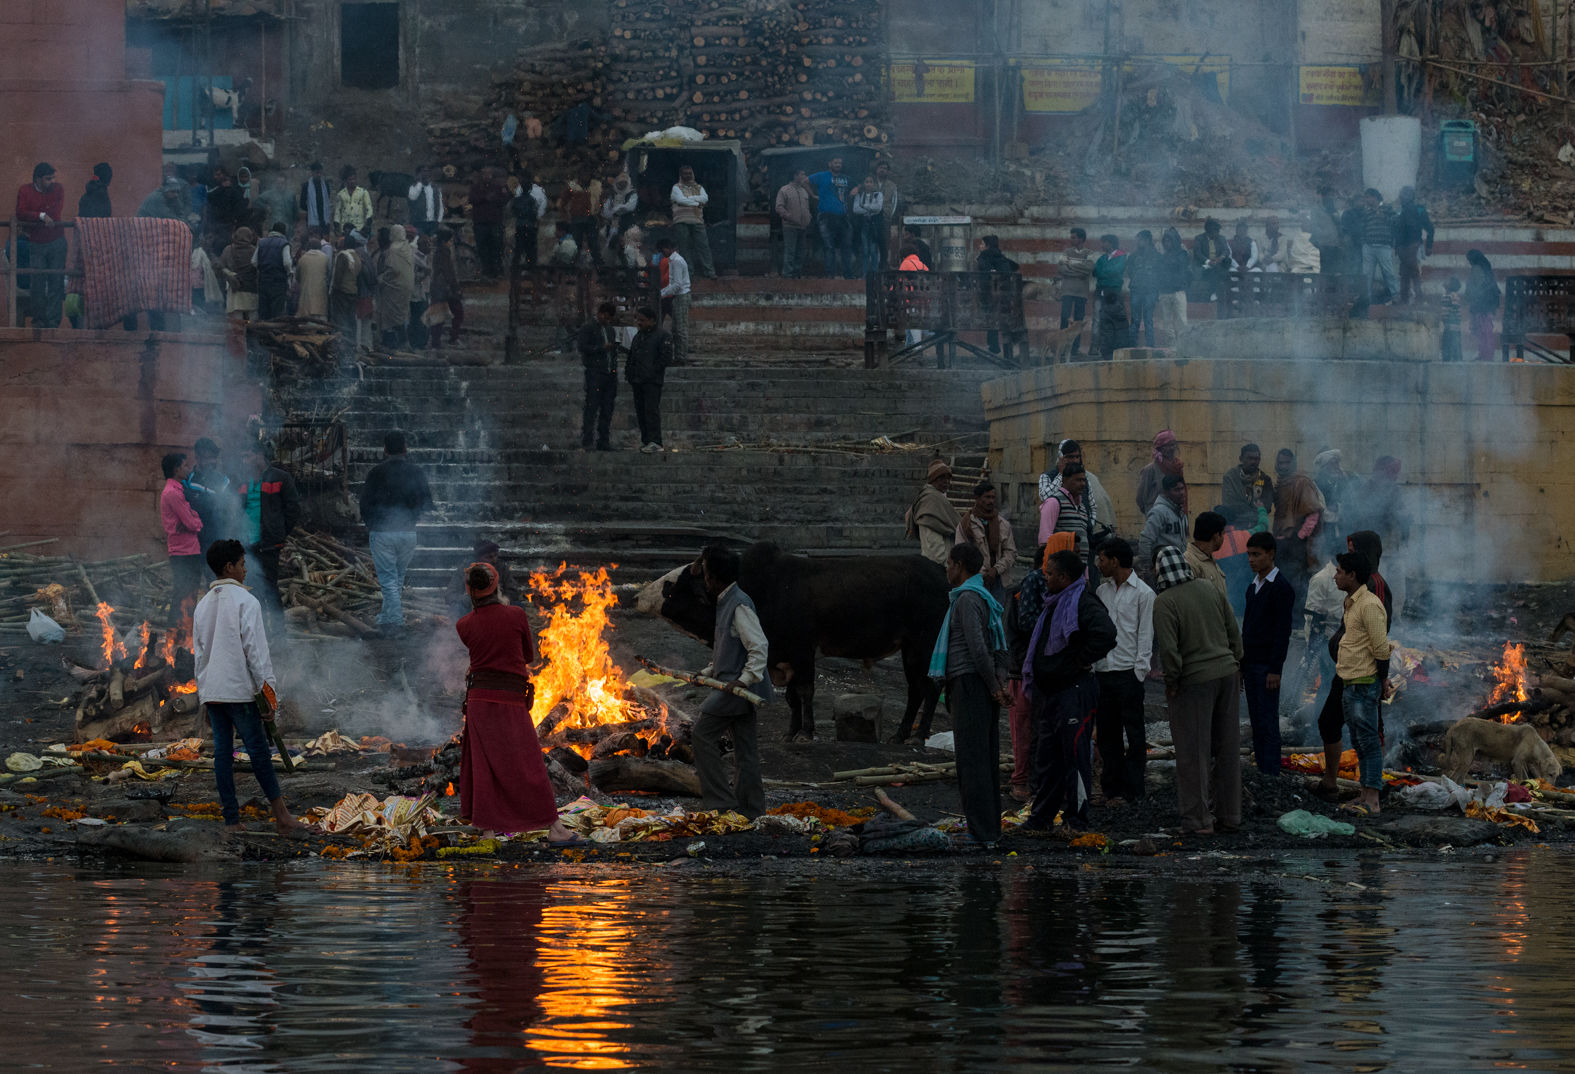 Cremation ghat by the Ganges, Varanasi, January 2018